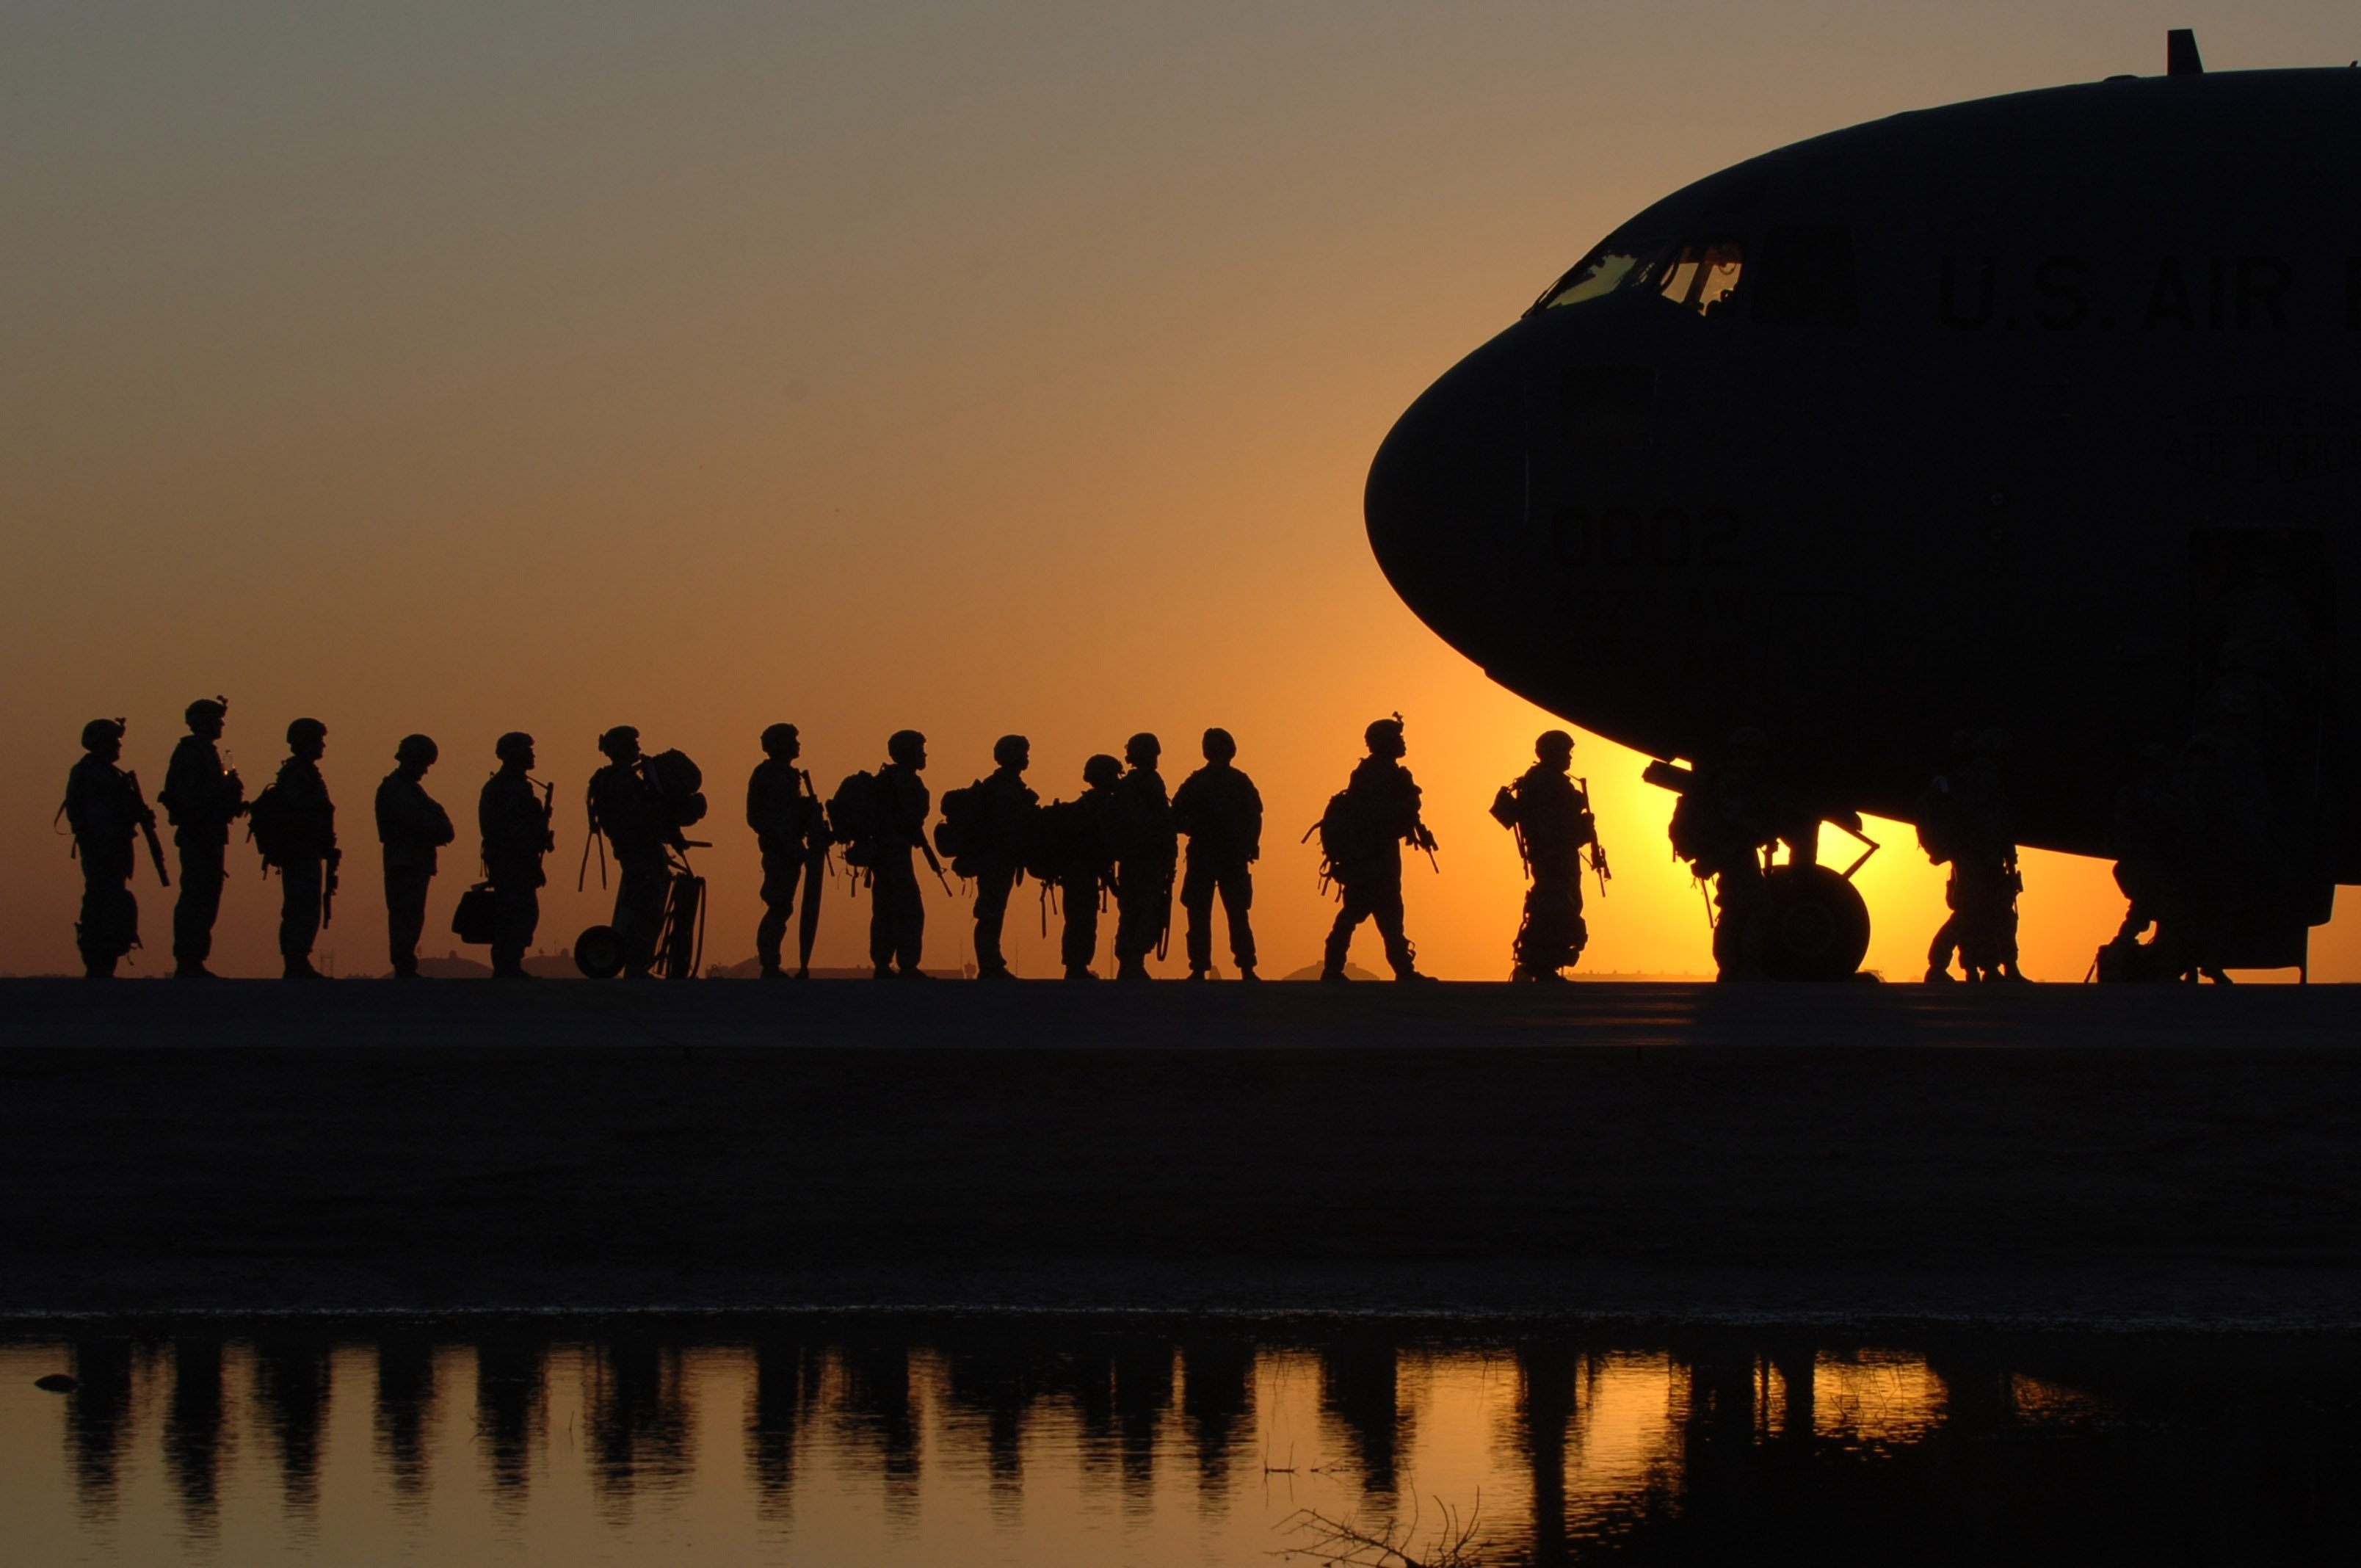 Soldiers and airplane